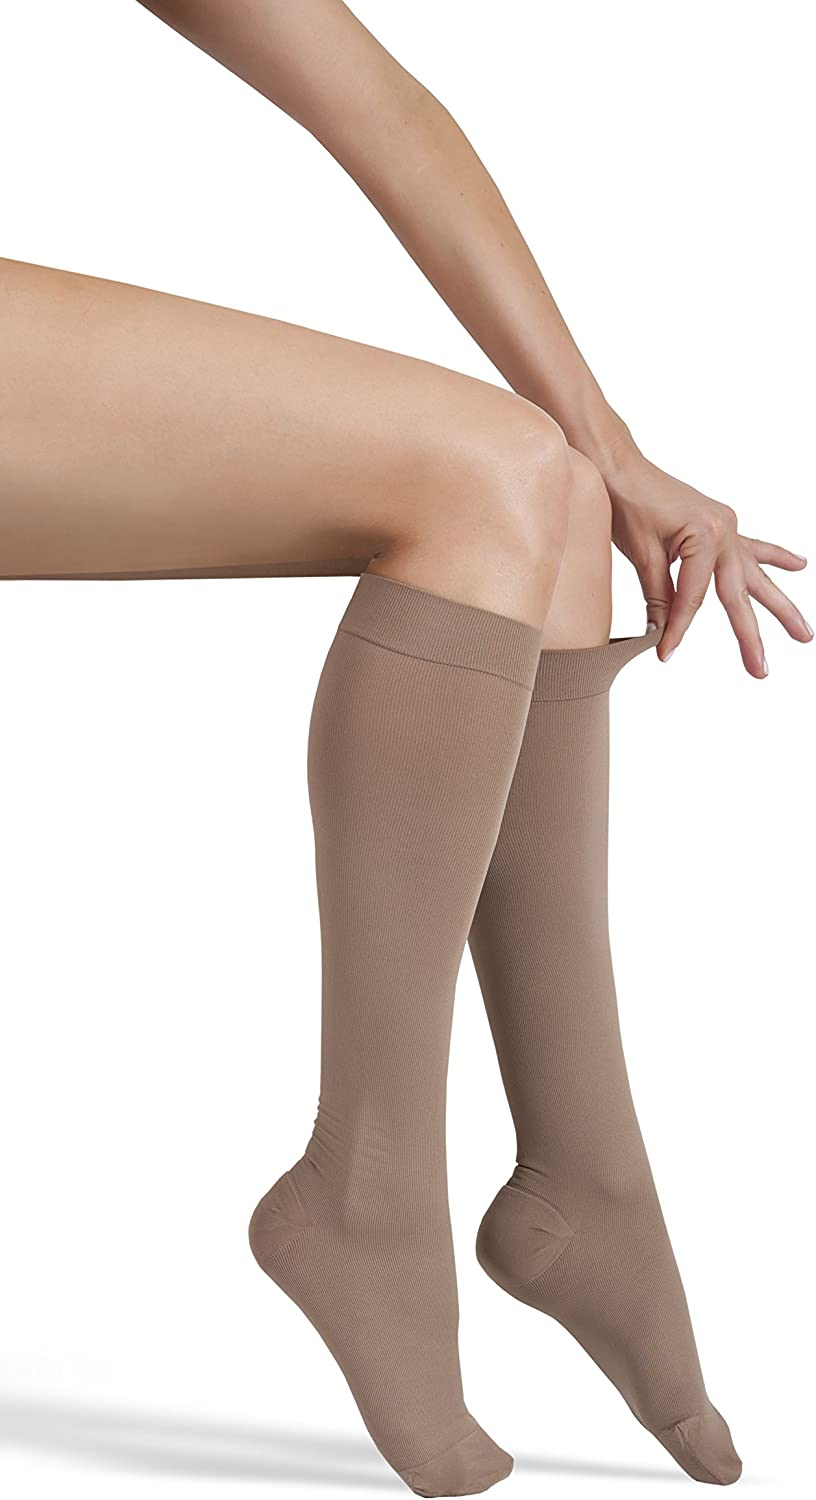 ITA-MED Microfiber Knee Highs Compression 25-35 mmHg : H-304 XX-Large Beige